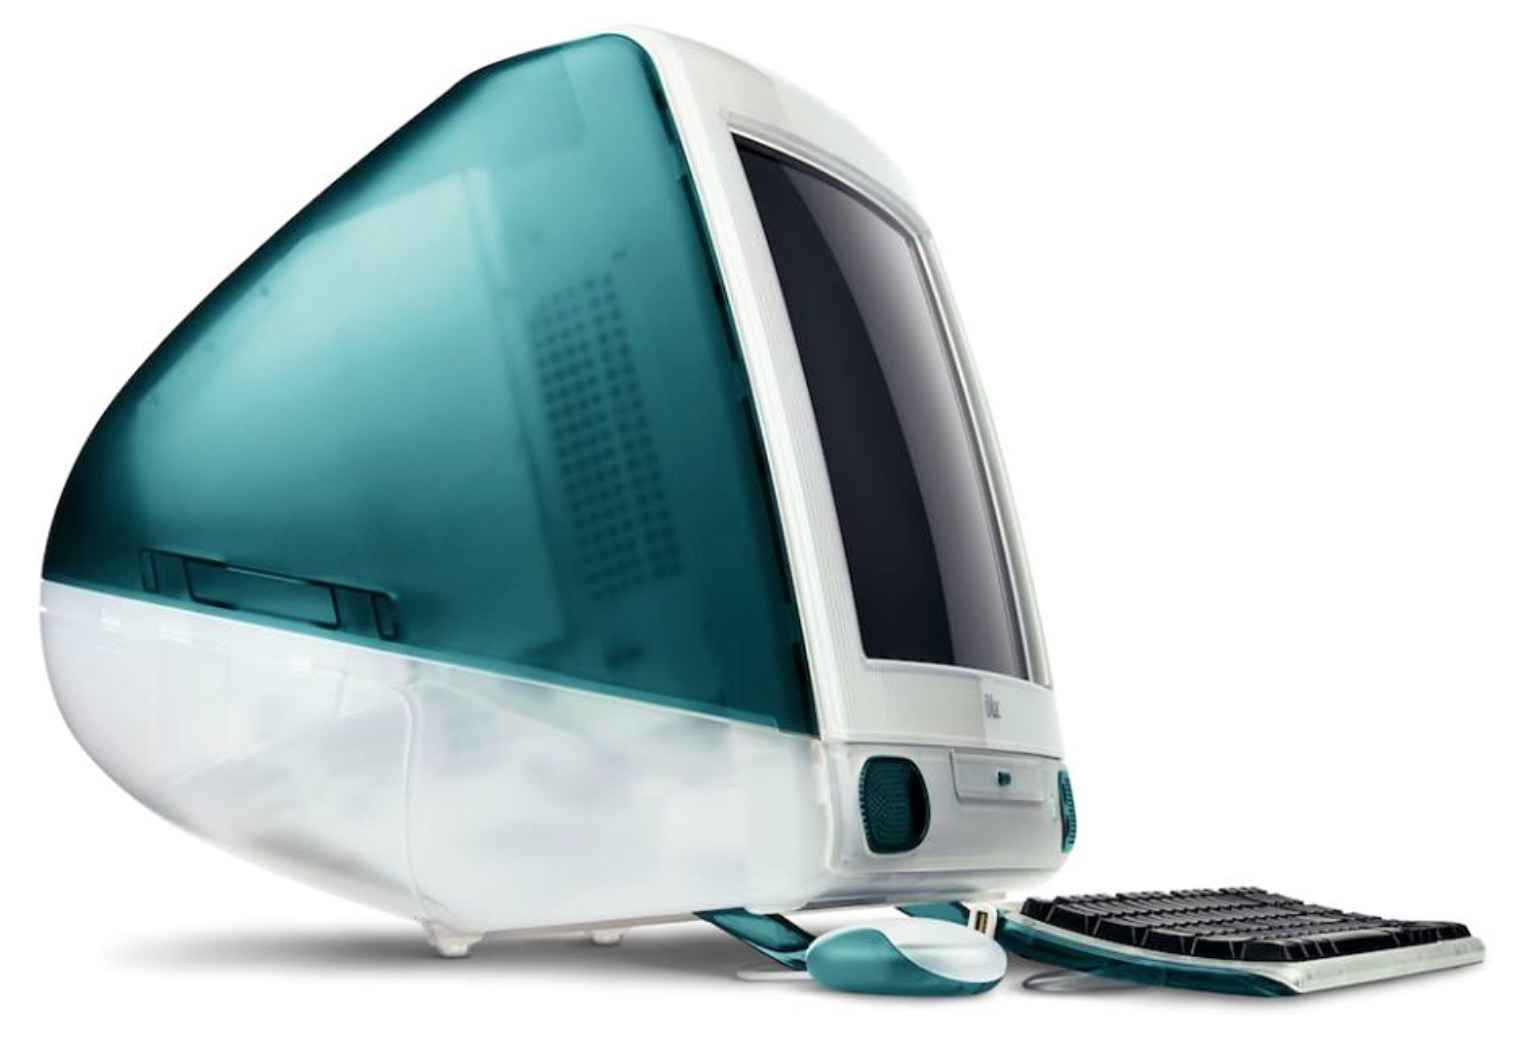 Apple's game-changing iMac